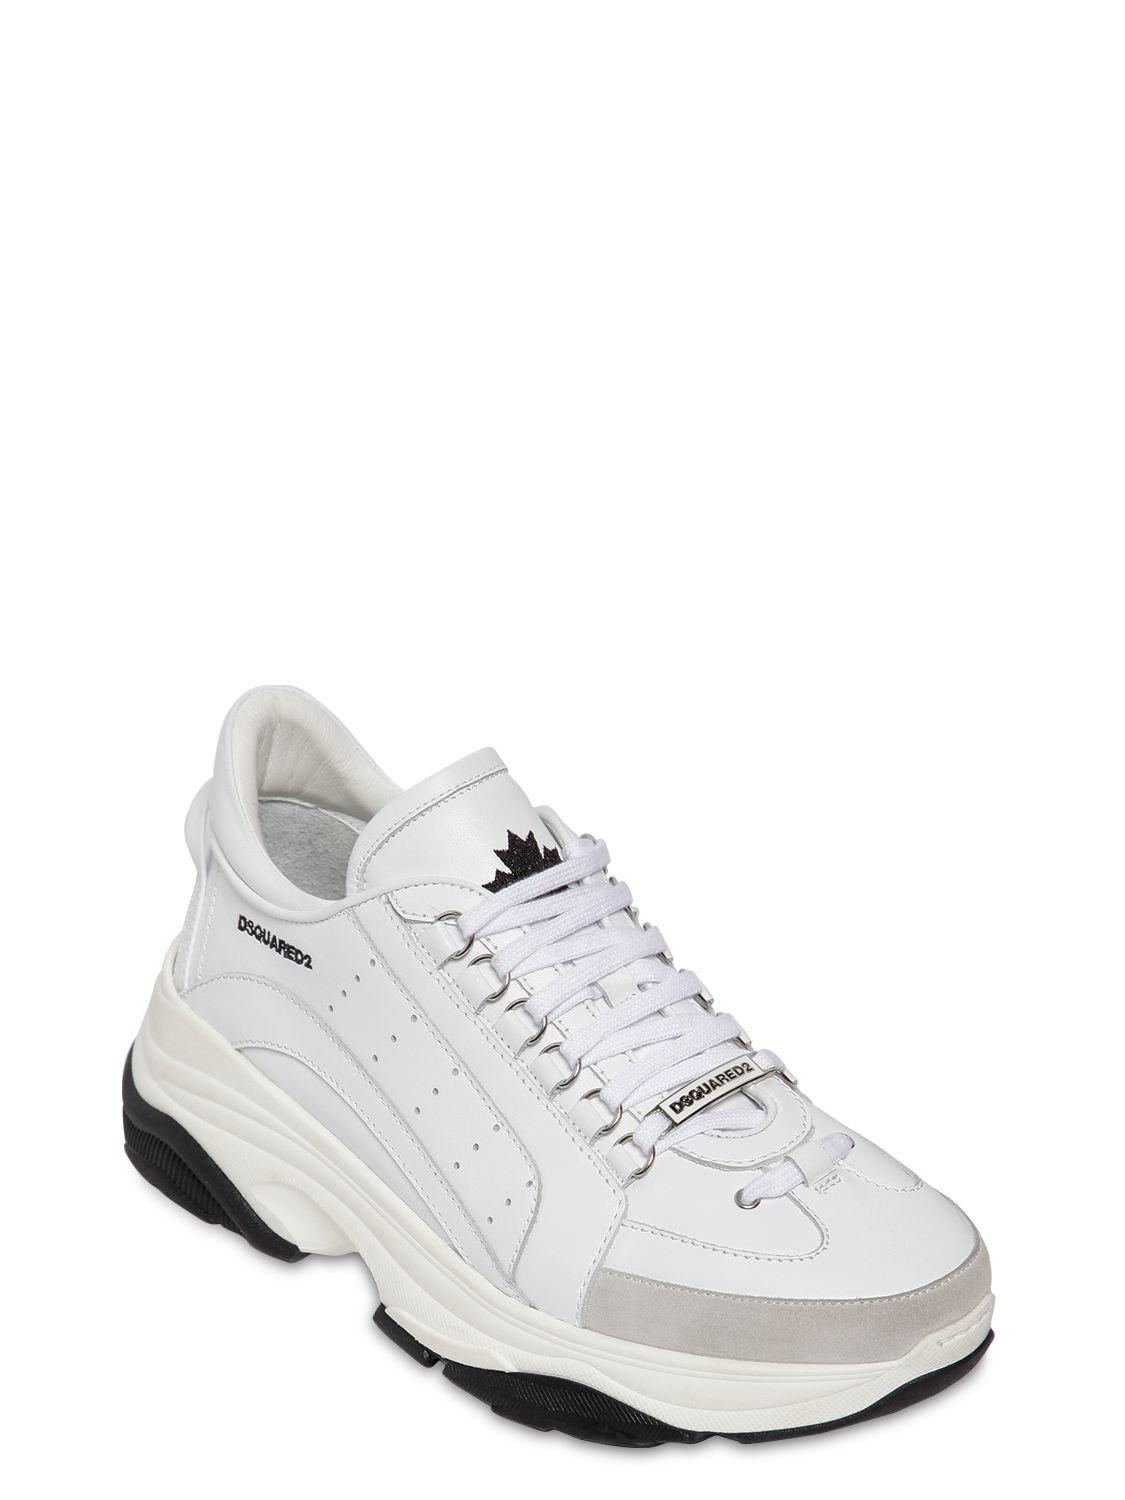 4ebece218b4 DSquared² 551 Bumpy Leather & Suede Sneakers in White for Men - Lyst